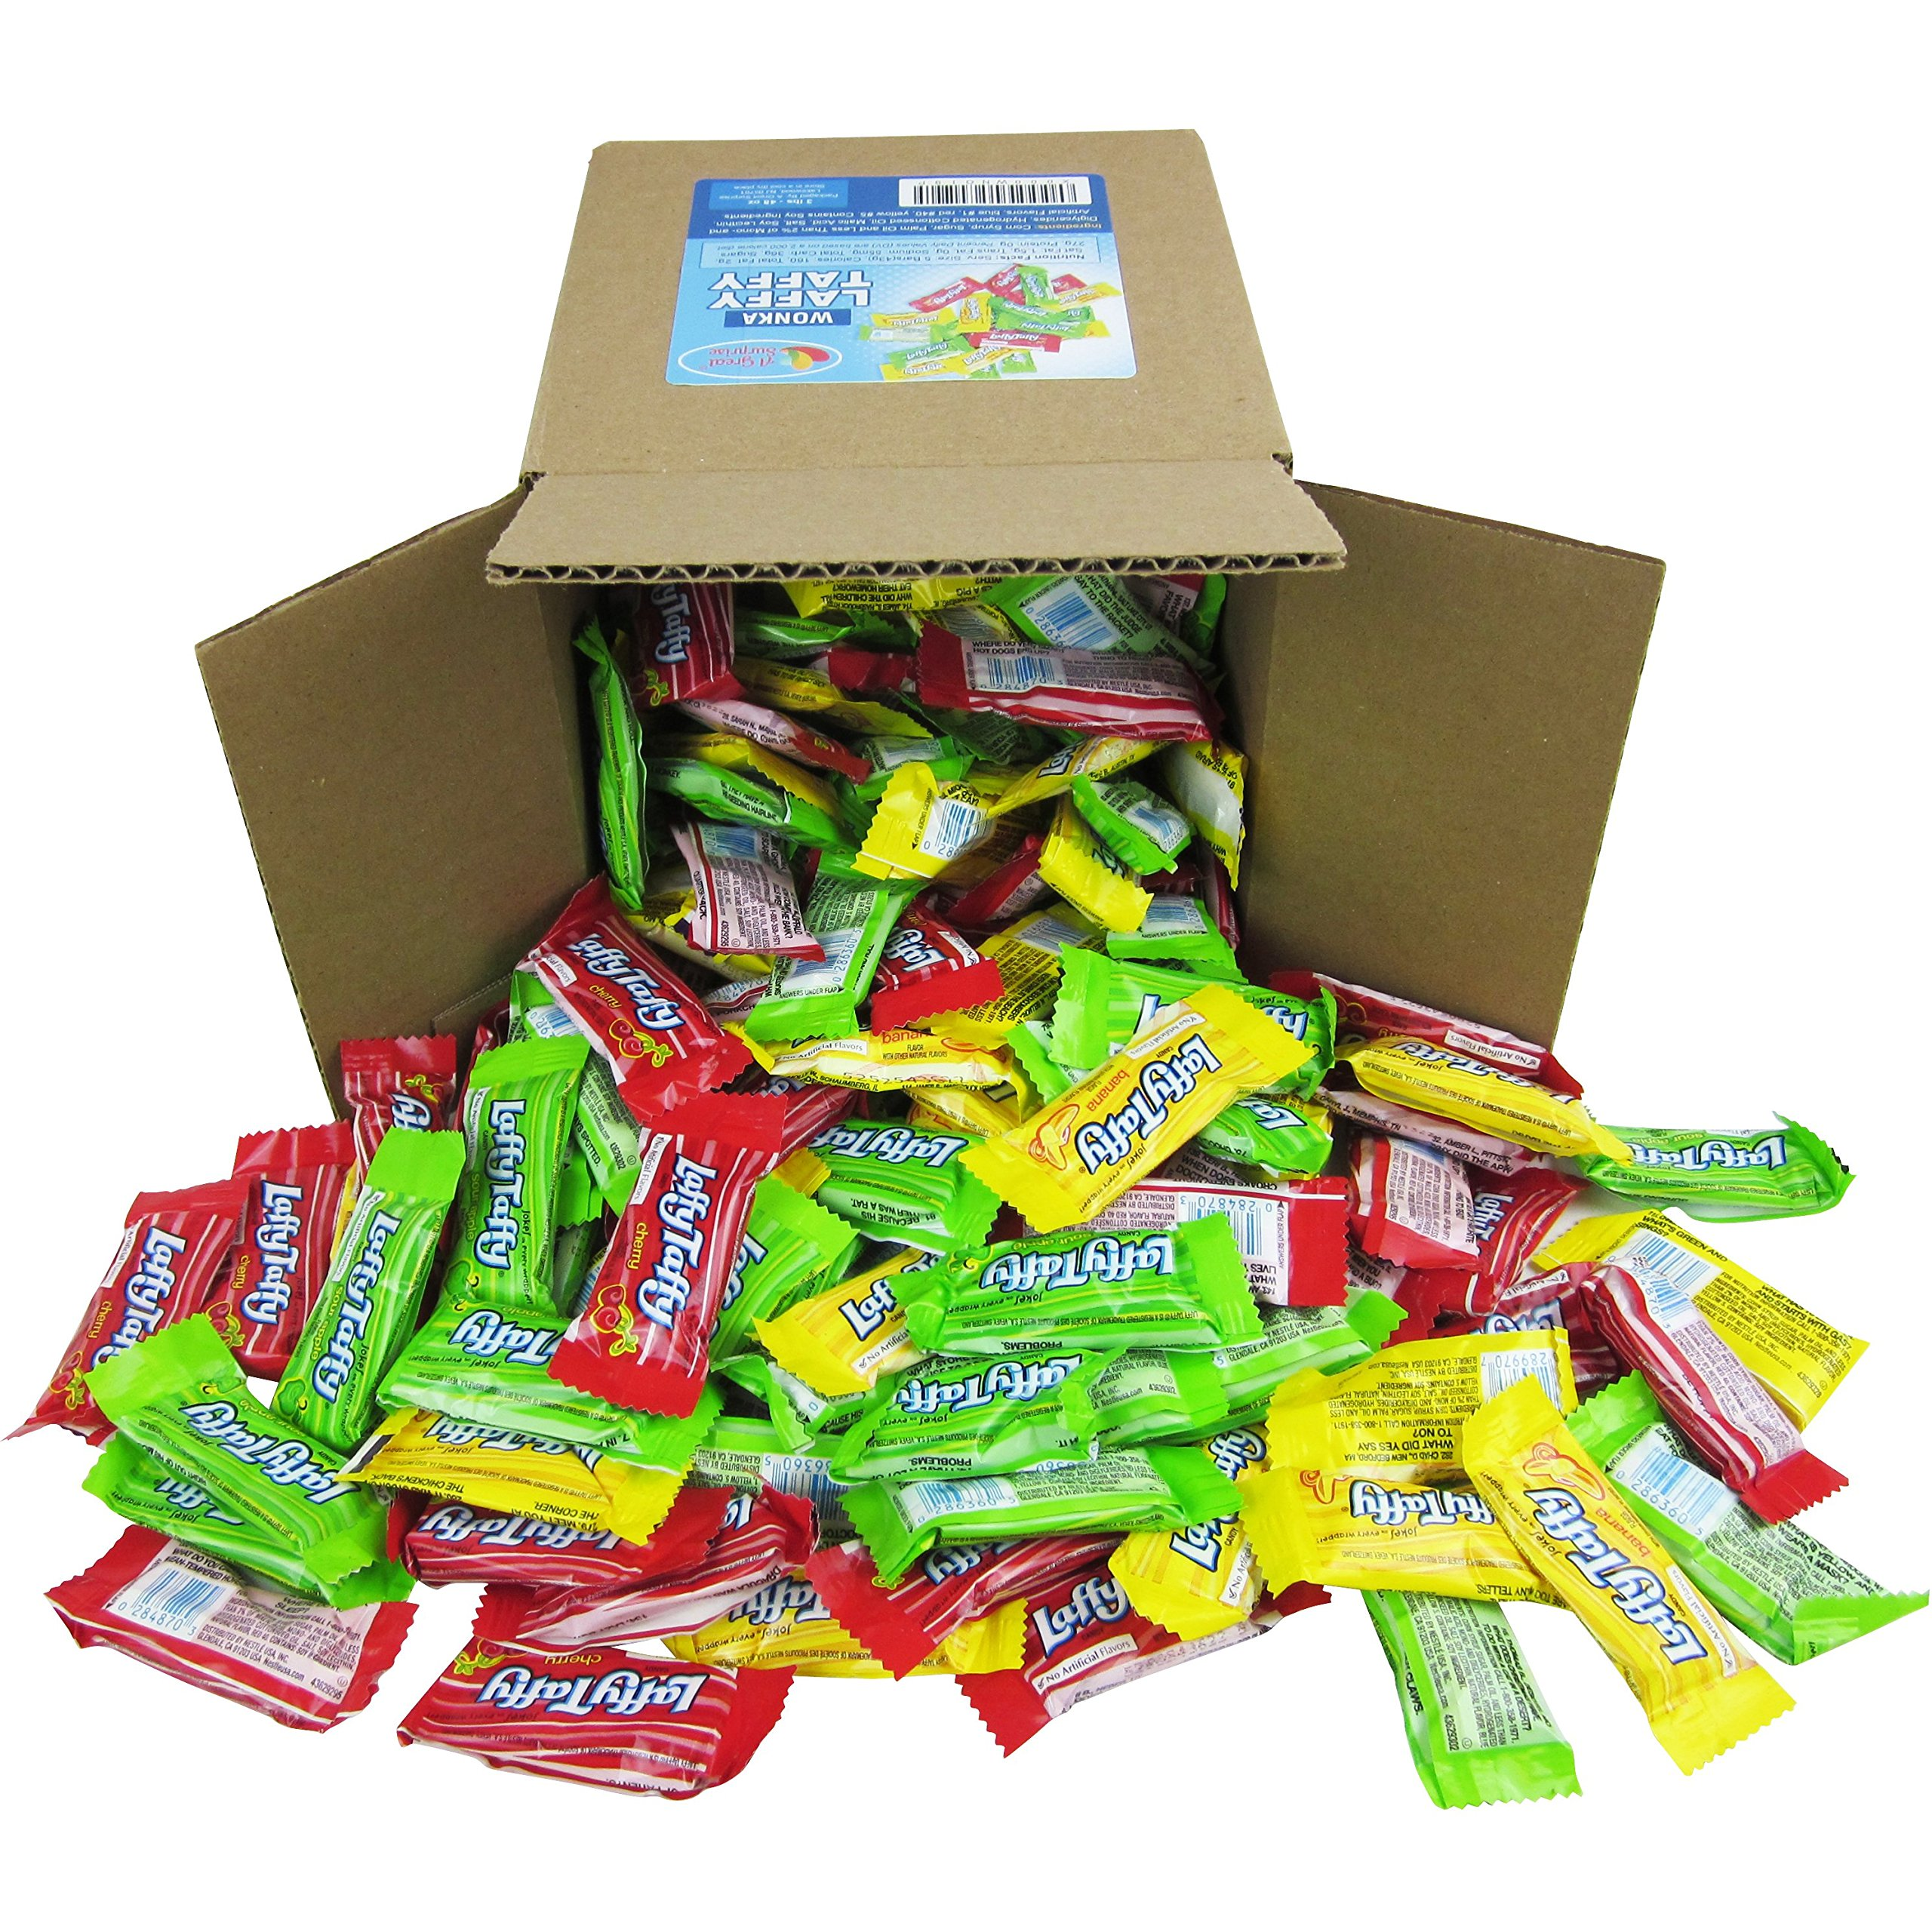 Laffy Taffy Assorted Fruit Flavors, Cherry Green Apple Banana Candy Bulk Party Box 6x6x6 Family Size by A Great Surprise (Image #1)